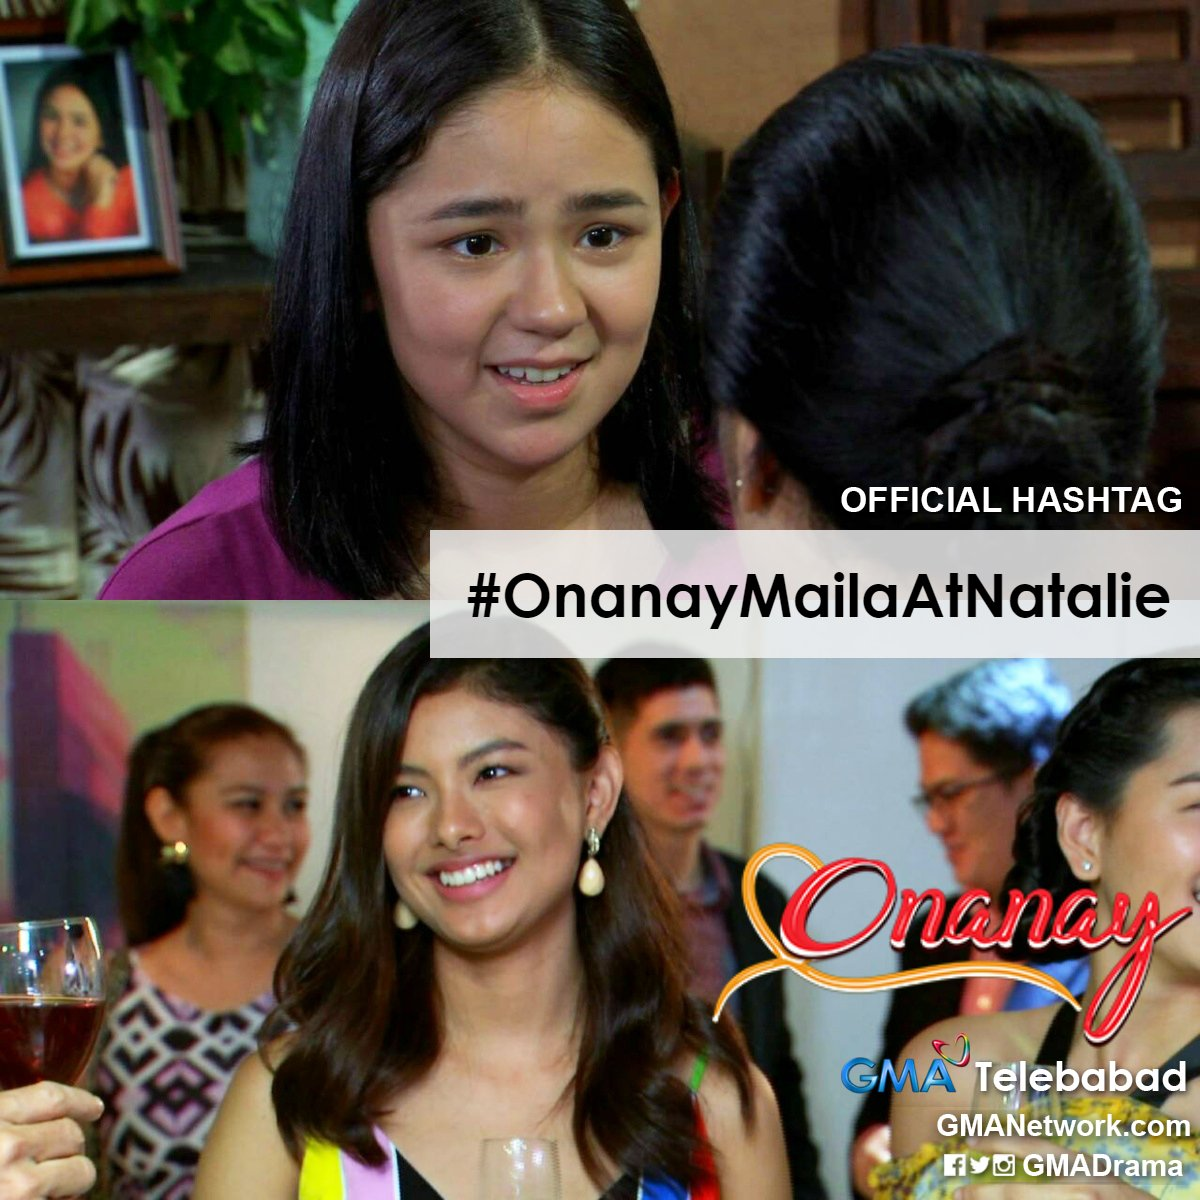 Are you aware that the way you treat each other and the way you treat yourself is the way your mother treated you ? Our Friday HT #OnanayMailaAtNatalie  Have a nice day to everyone ! @ValdezKate_ @mikeequintos @tinyhedwig @Macherieamour Nora Aunor<br>http://pic.twitter.com/LvxV34zGg2